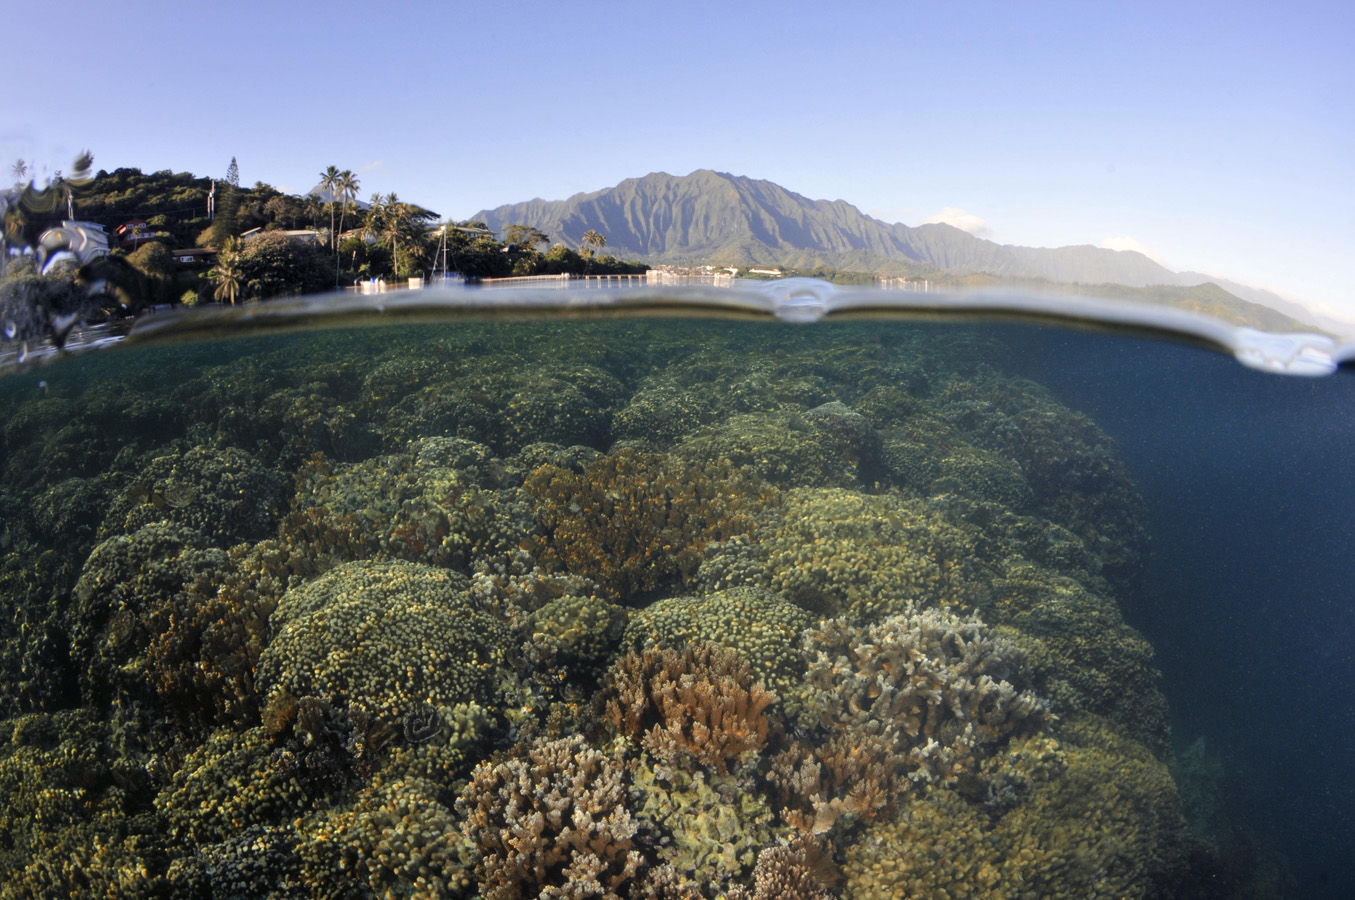 Split field of view showing coral reef below the water surface and mountains and bay shore above.